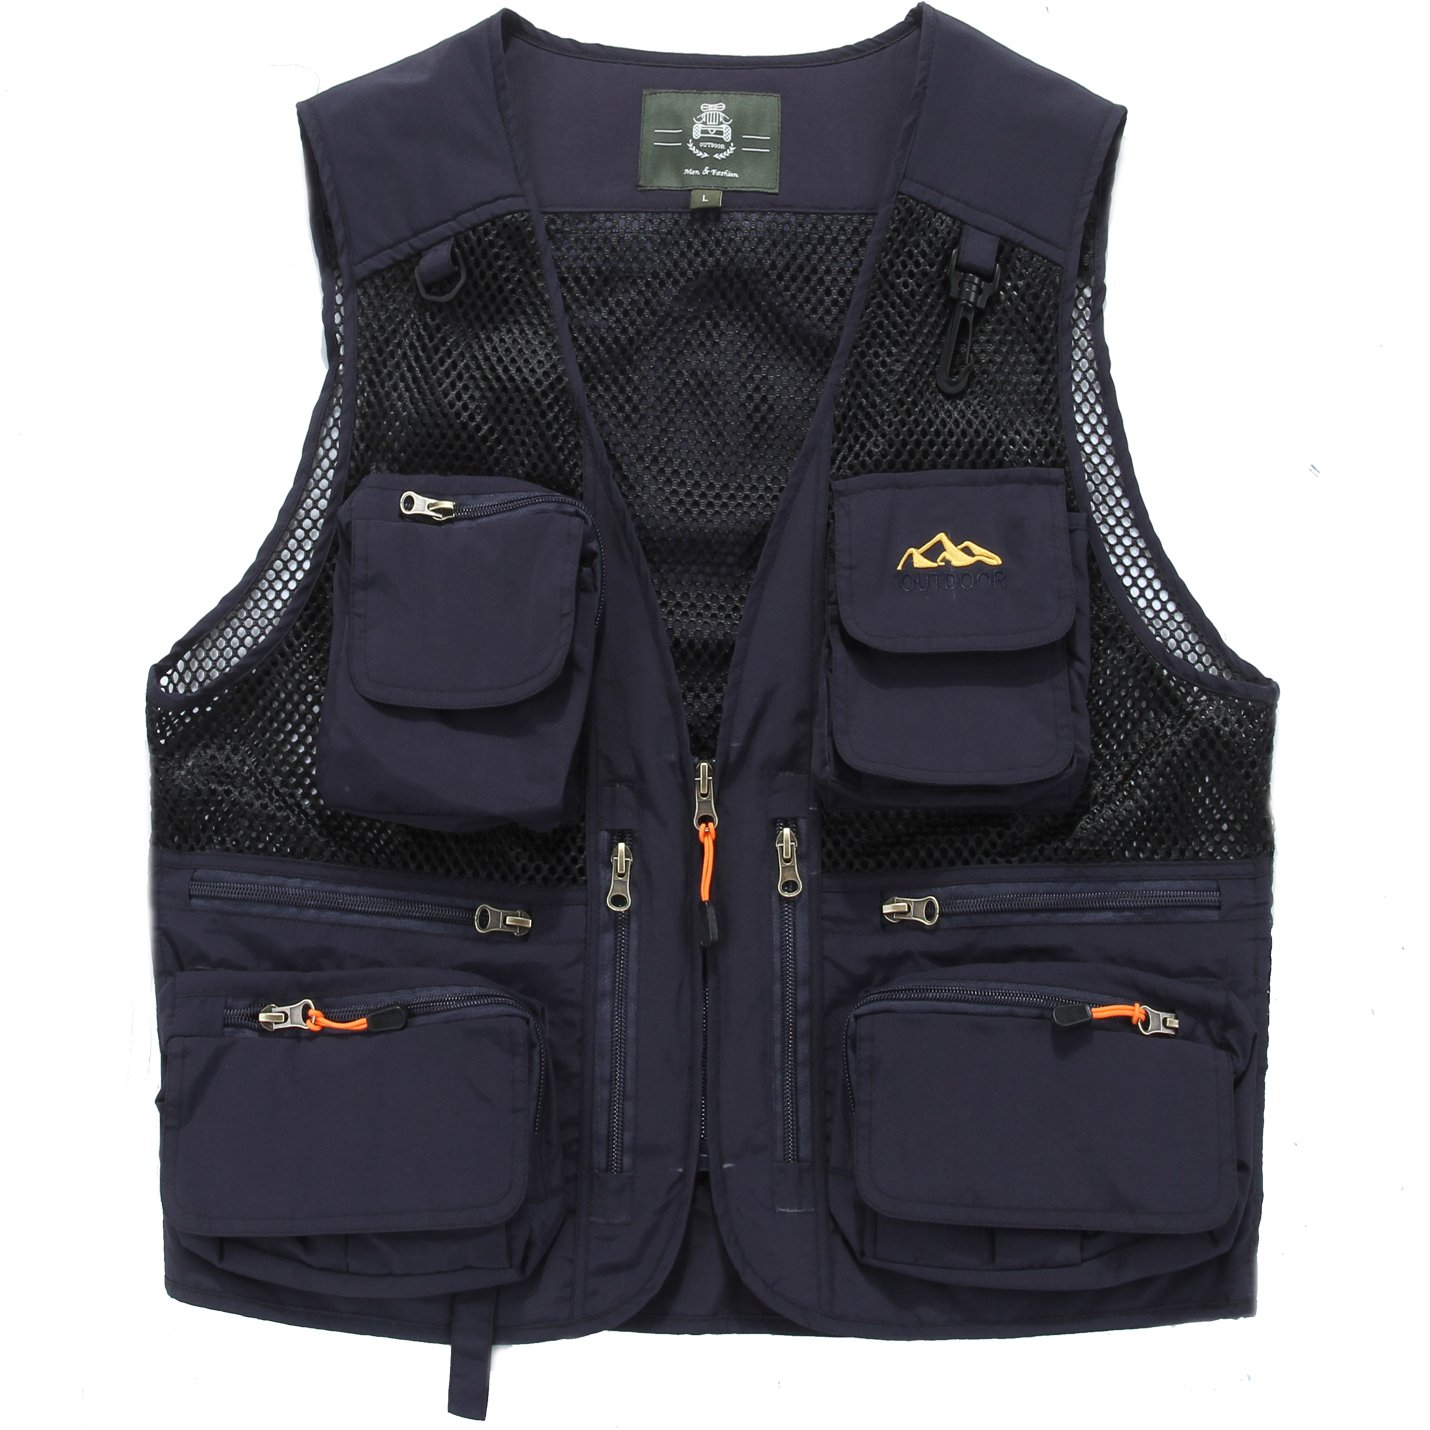 Zhusheng Men's Mesh 15 Pockets Photography Fishing Hunting Outdoor Quick Dry Vest Breathable Waistcoat Jackets (X-Large, Style 02 Navy Blue)